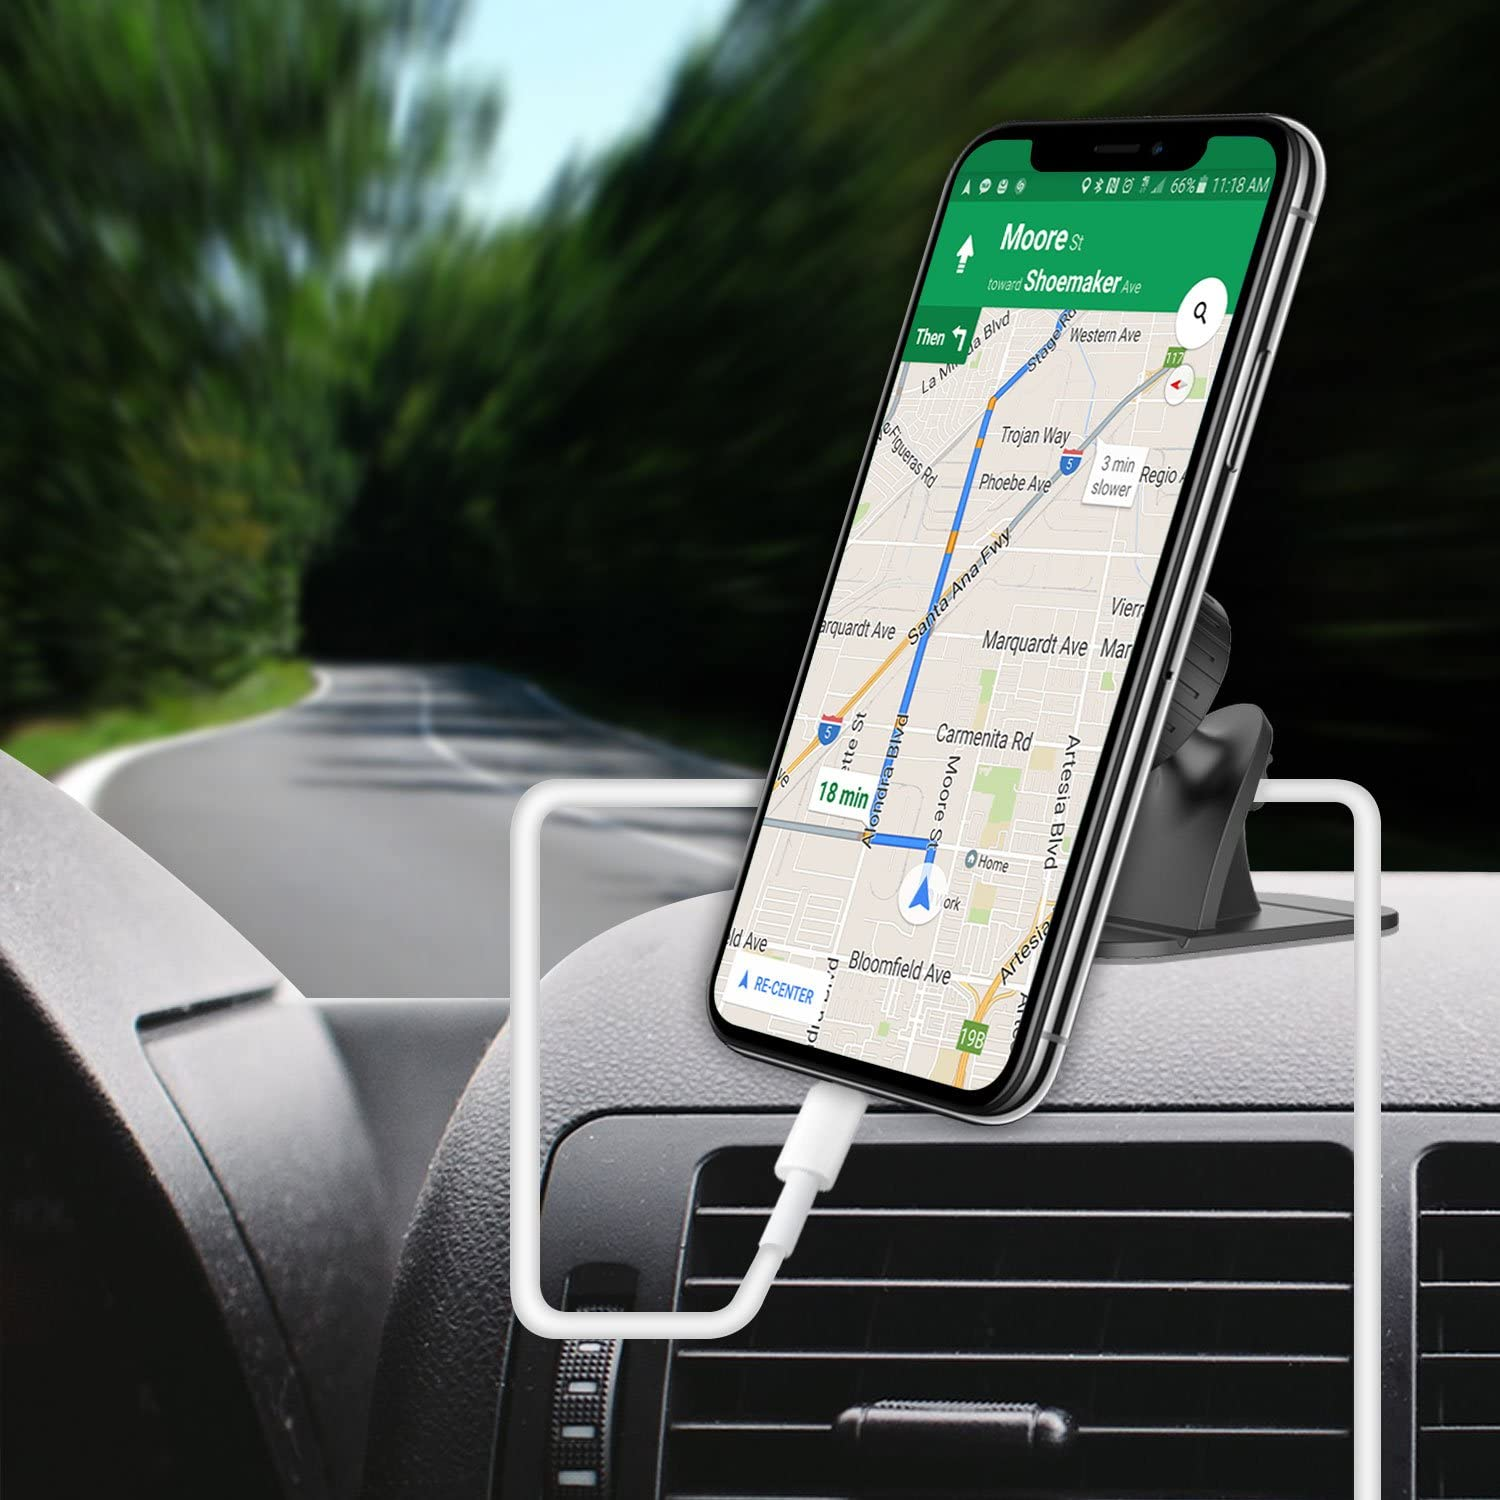 Cellet Magnetic Dashboard Phone Holder Mount Universal Compatible with iPhone 11 Pro 11 Pro Max 11 Xr Xs Max Xs X SE 8 Plus 8 7 Plus 7 6S Plus 6S 6 Plus 65S 5C 5 4S 4 3GS 3G iPod Touch iPod Nano